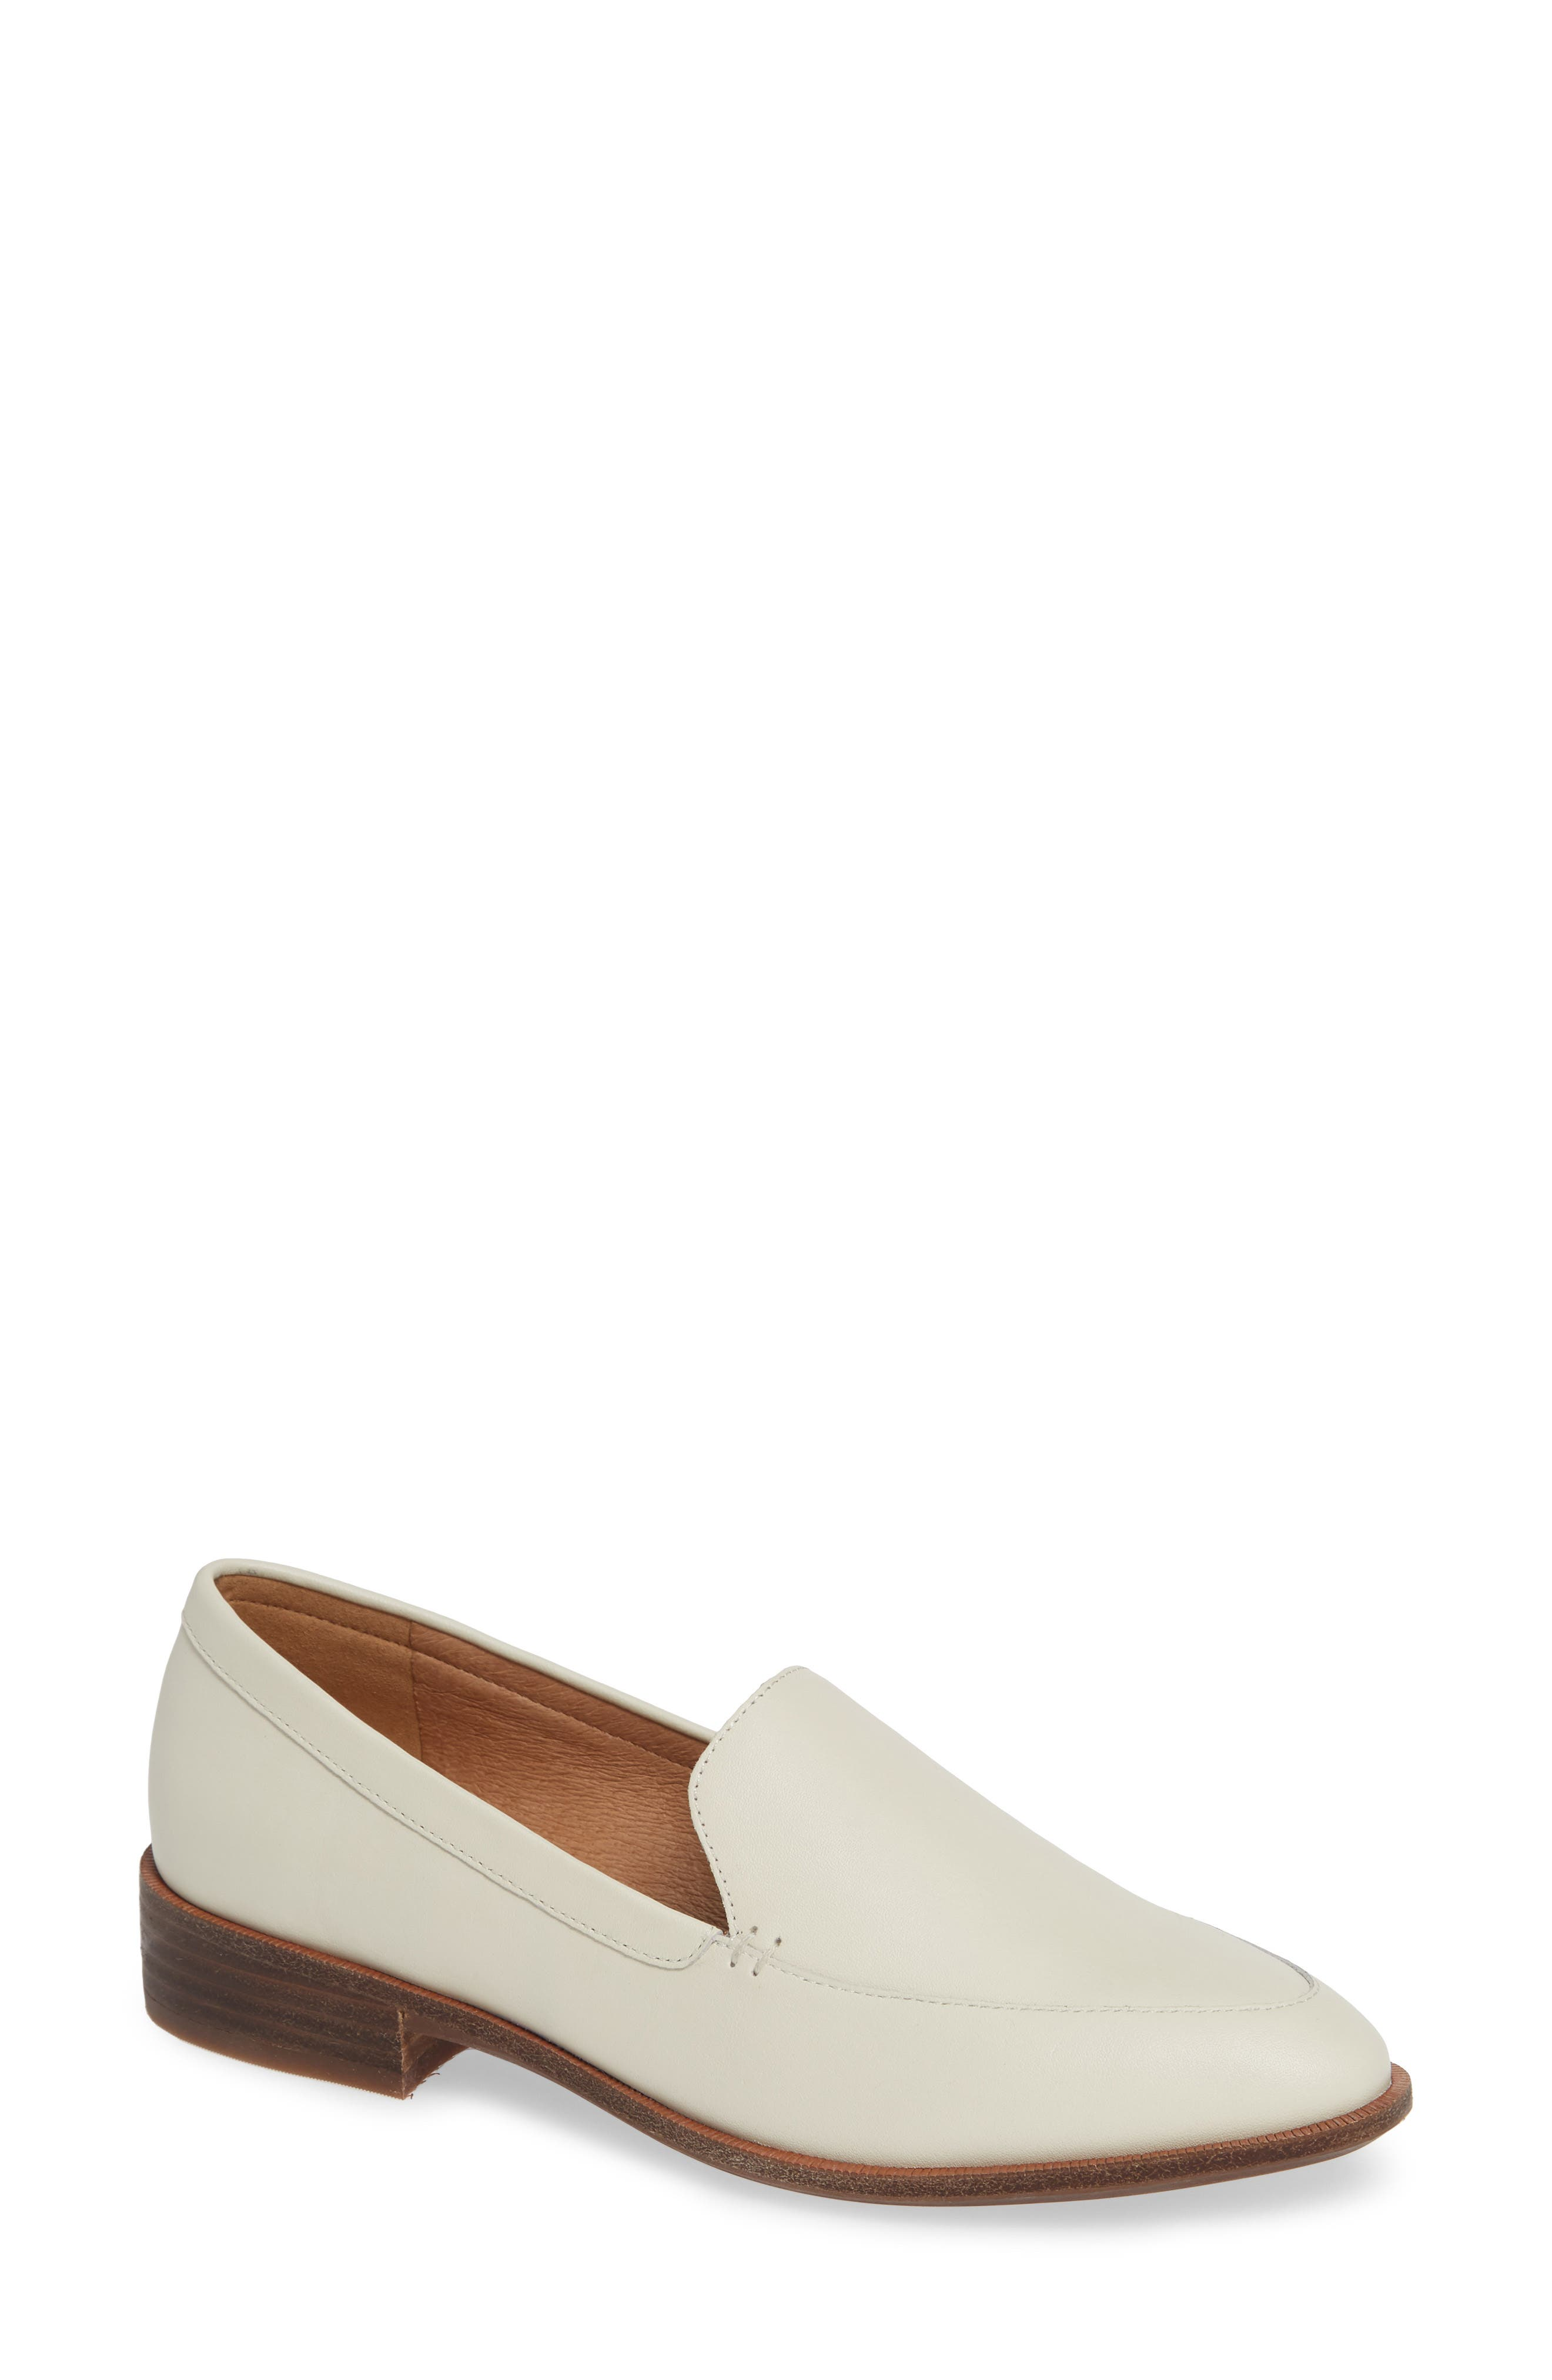 Madewell The Frances Loafer (Women)